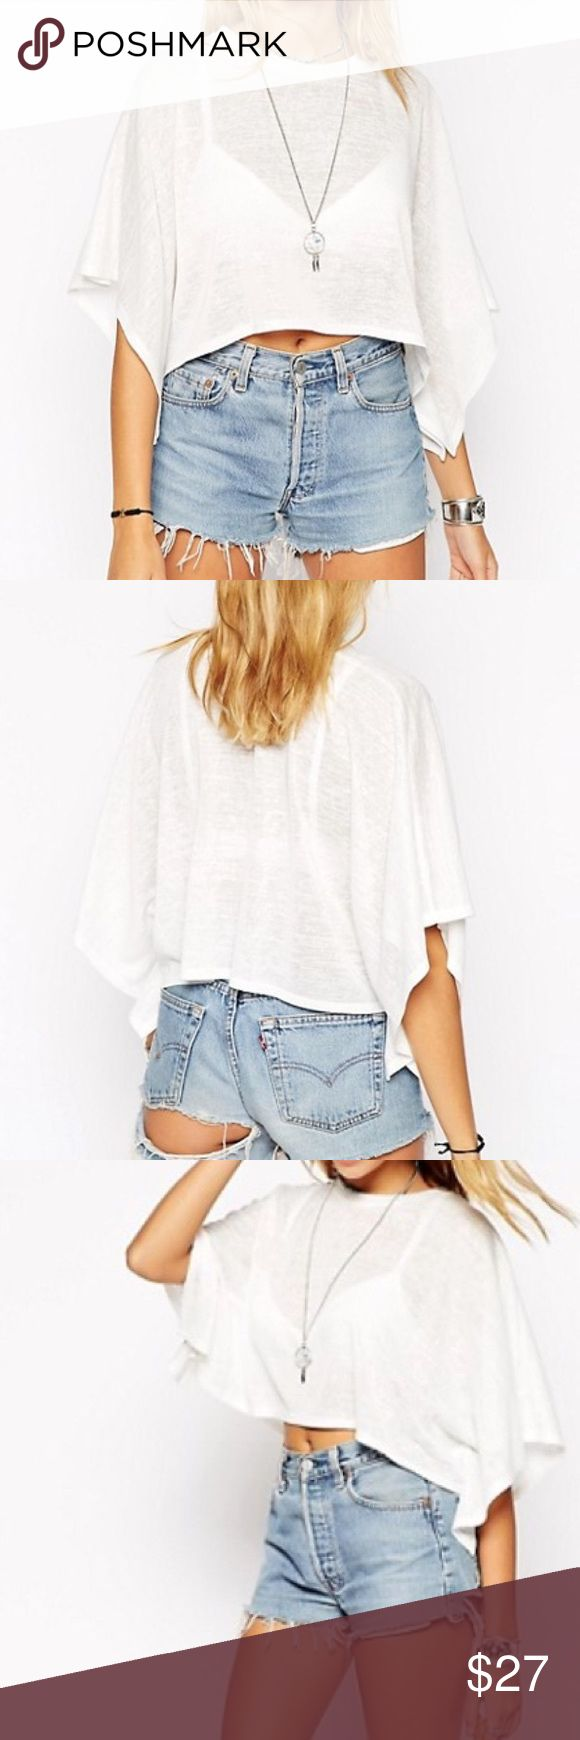 Asos kimono poncho boxy festival crop top Boxy knit crop top. Off white cream. Slightly sheer but not see through at all. Nude bra looks great. Worn once, perfect condition. Size 4 fits like XS-S ASOS Tops Crop Tops